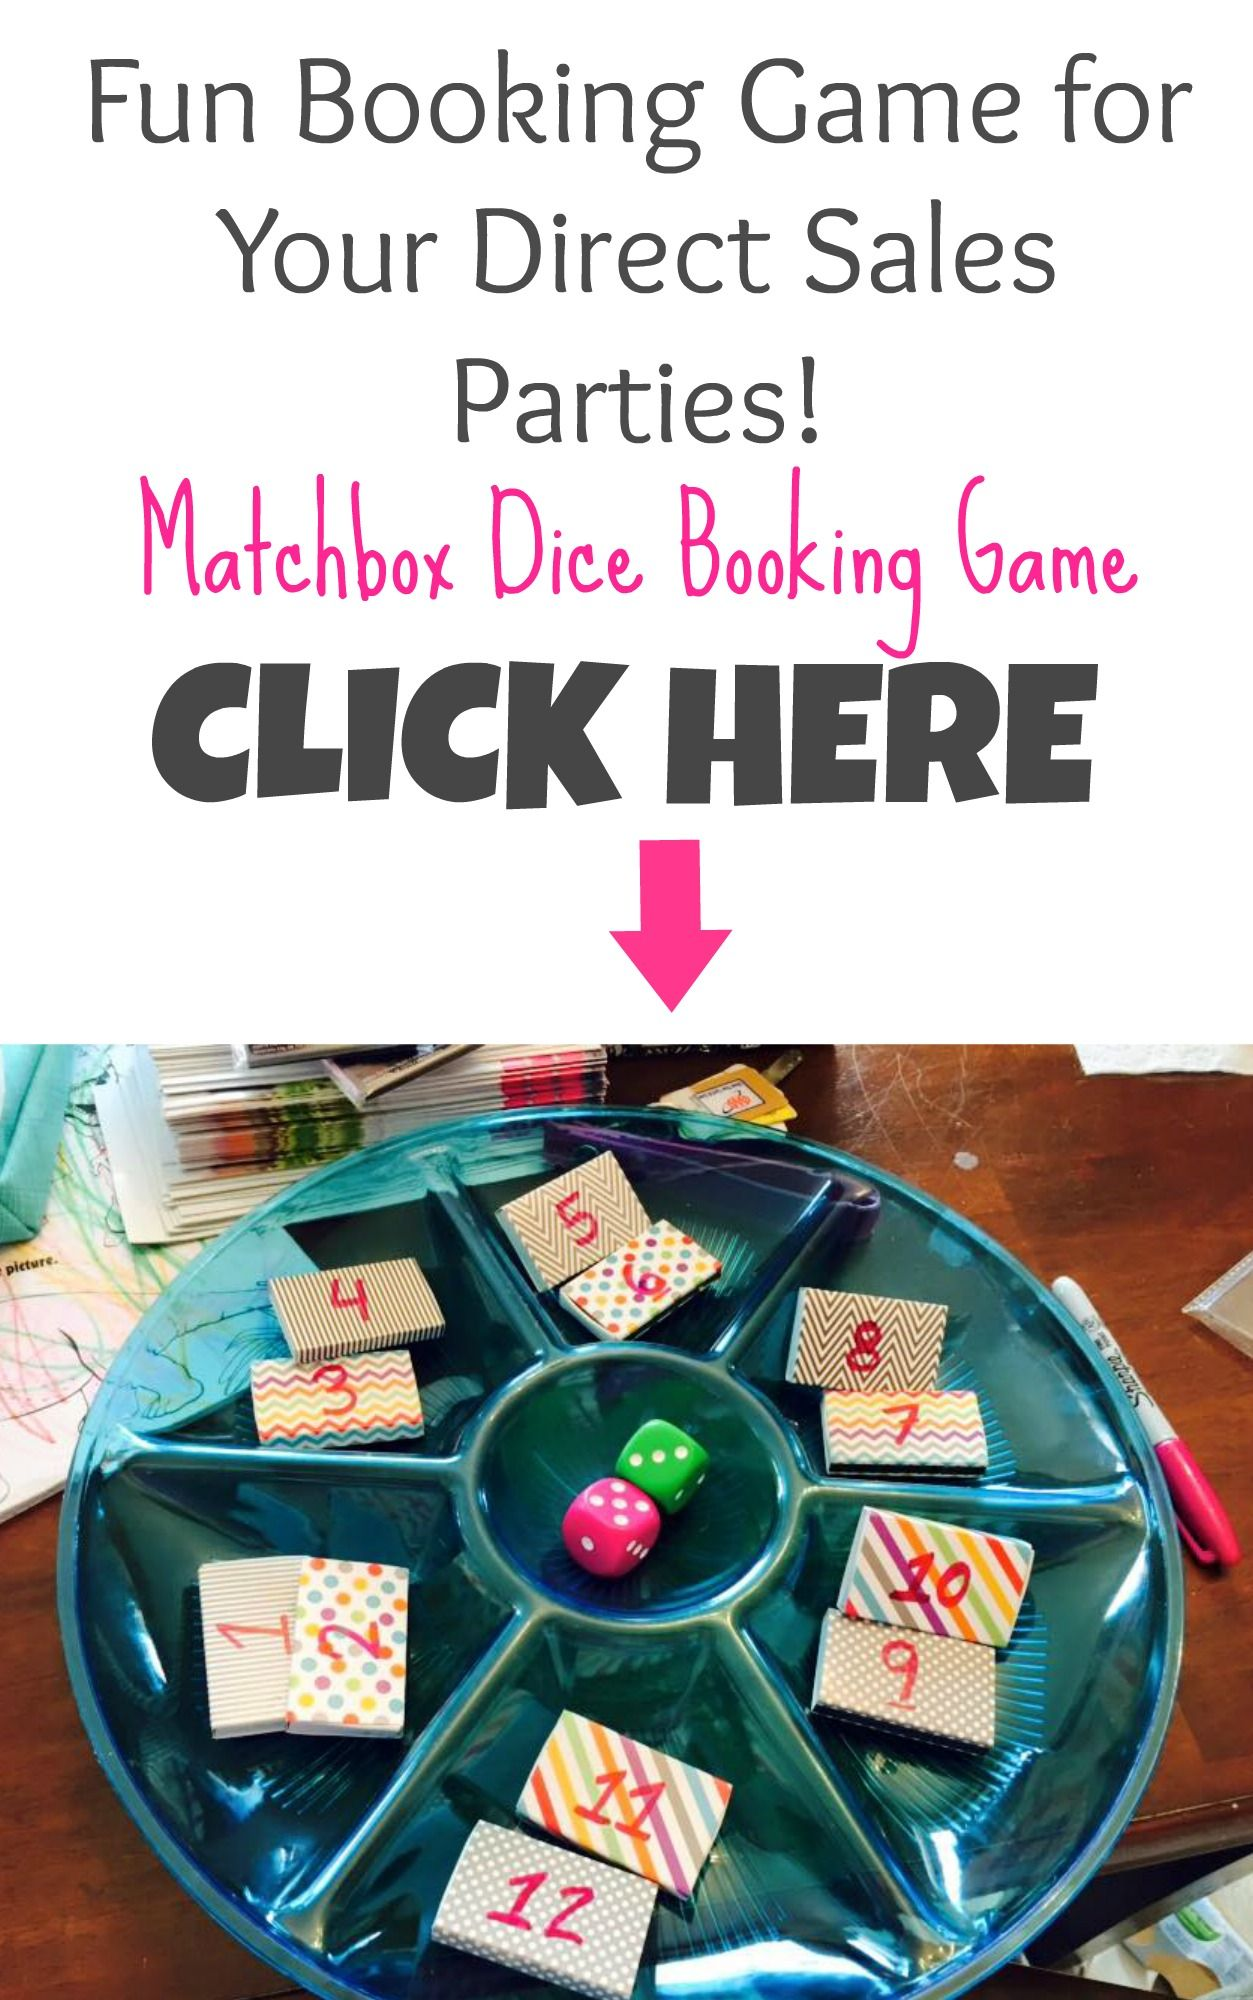 Matchbox Dice Booking Game for Your Direct Sales Parties